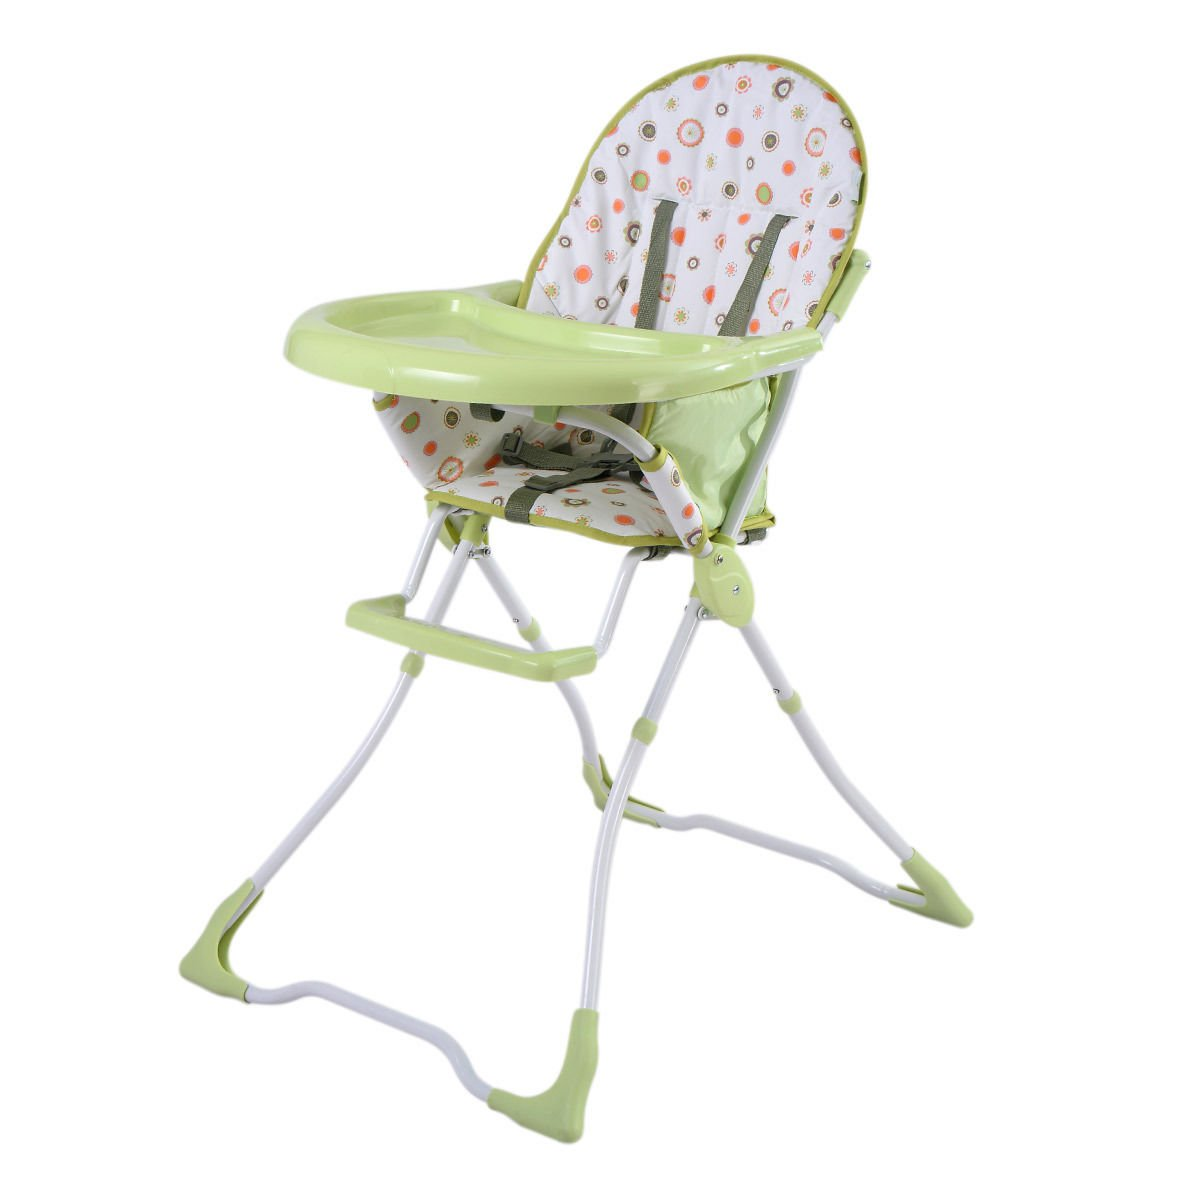 Costzon Baby High Chair Infant Toddler Feeding Booster Seat Folding Safe Portable (Green)